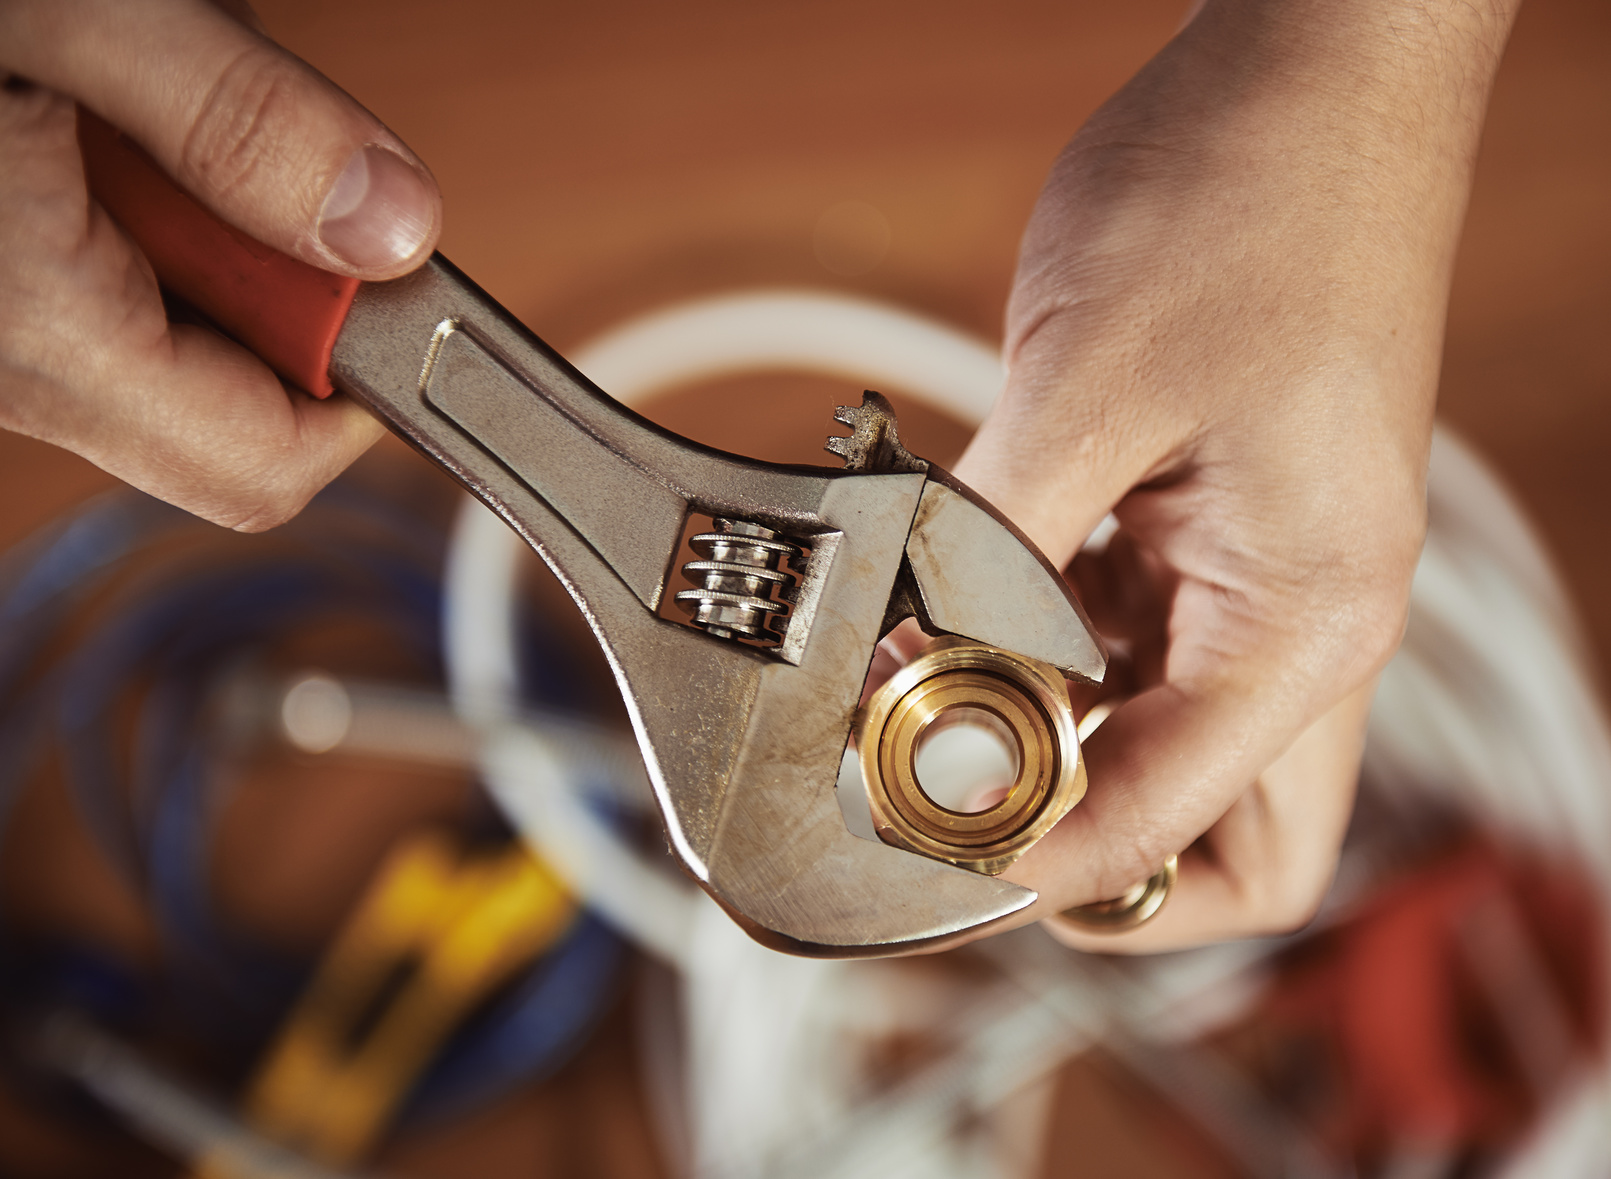 Close Up Of Plumber Hands Screwing Nut Of Pipe With Wrench